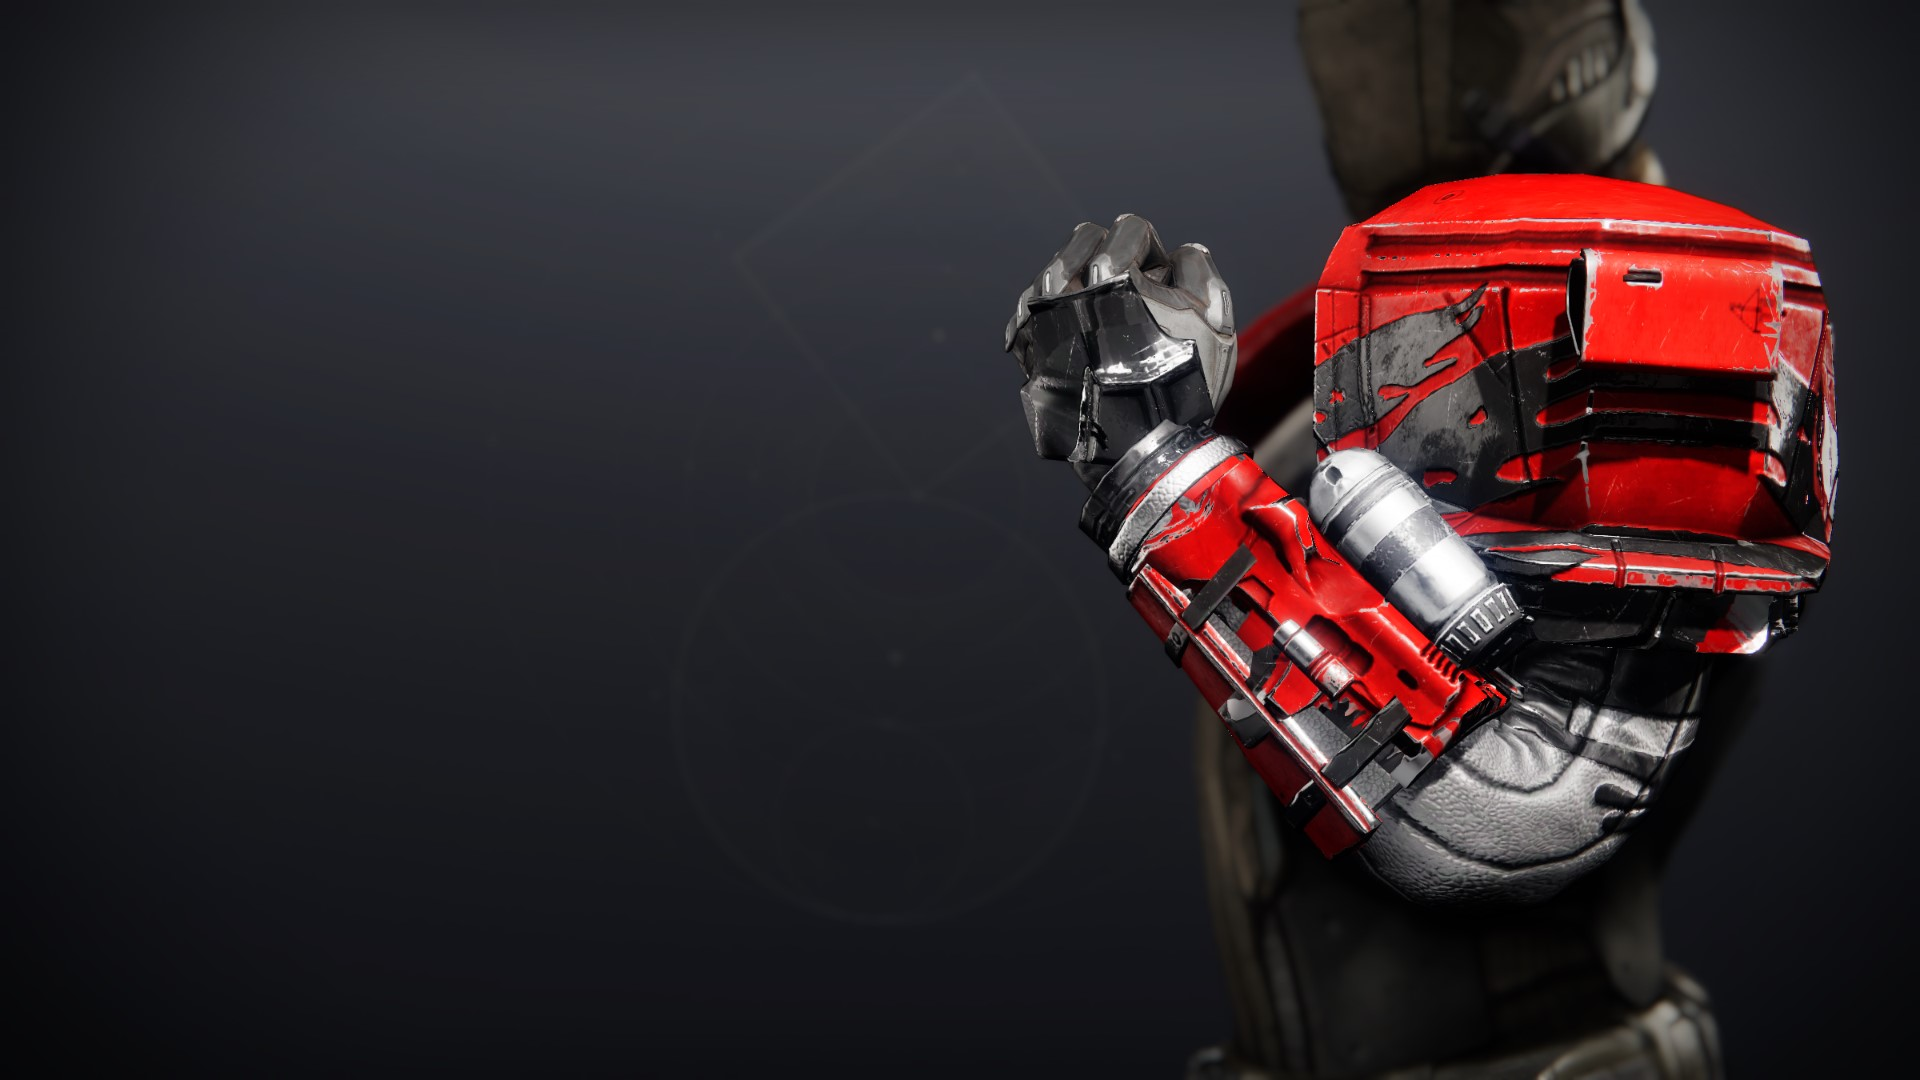 An in-game render of the Cinder Pinion Gauntlets.